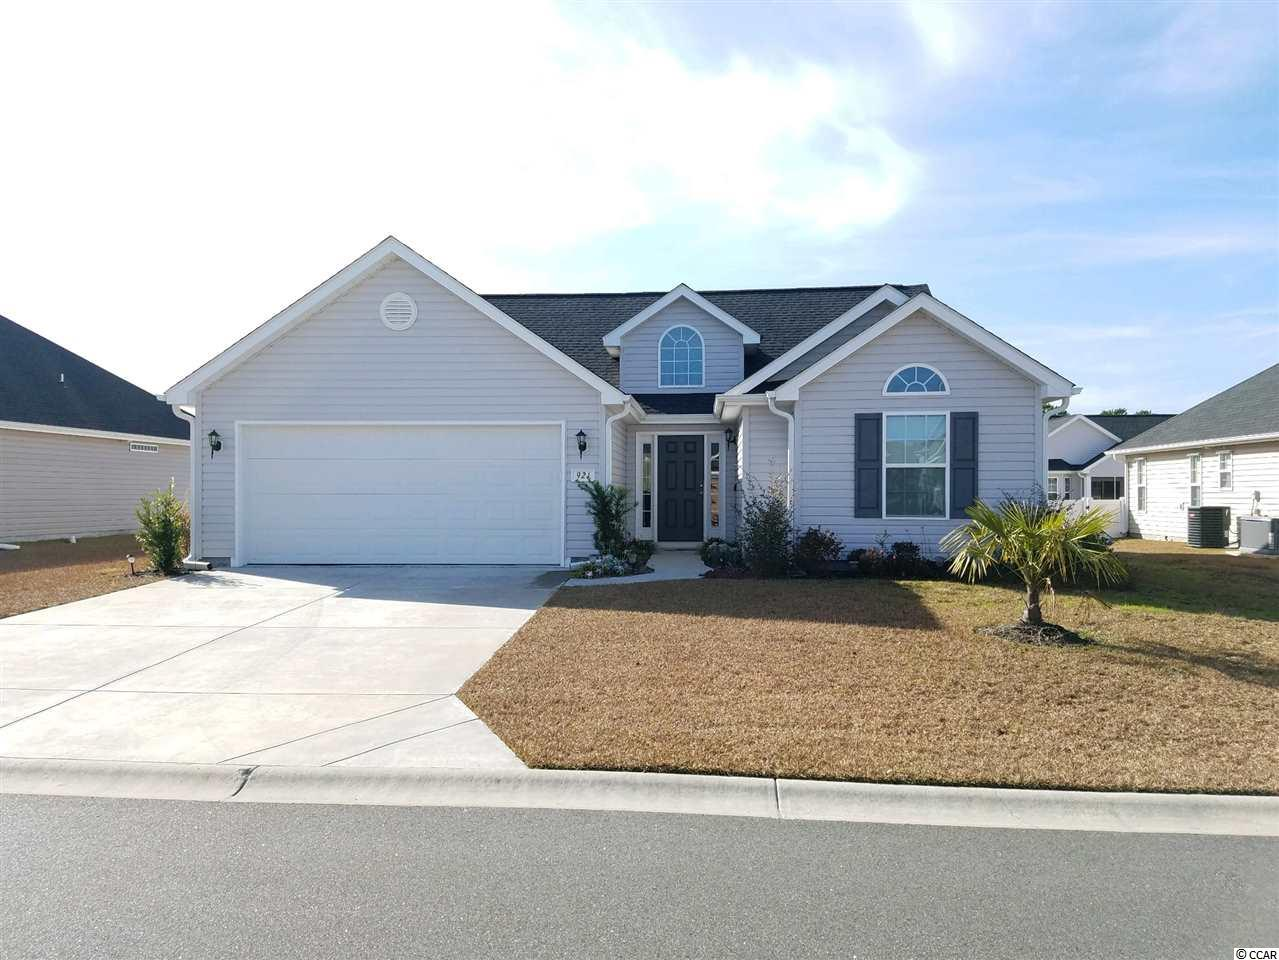 Wow, what a deal in Surfside Beach. Day after Christmas sale just in case Santa forgot about you. This immaculate home was newly built in 2017 and still has that new home smell. Open floor plan with 3 bedrooms and 2 full bathrooms. Fully enclosed Carolina Room. Complete fenced back yard with tons of room for outdoor parties or just relaxing with the family. This home is a very short Golf Cart ride to Surfside Beach , which, has more Golf Cart parking accesses than cars. Mallard Landing Village features state-of-the-art development regulations. Great price for a nearly brand new home in an affordable beach location.